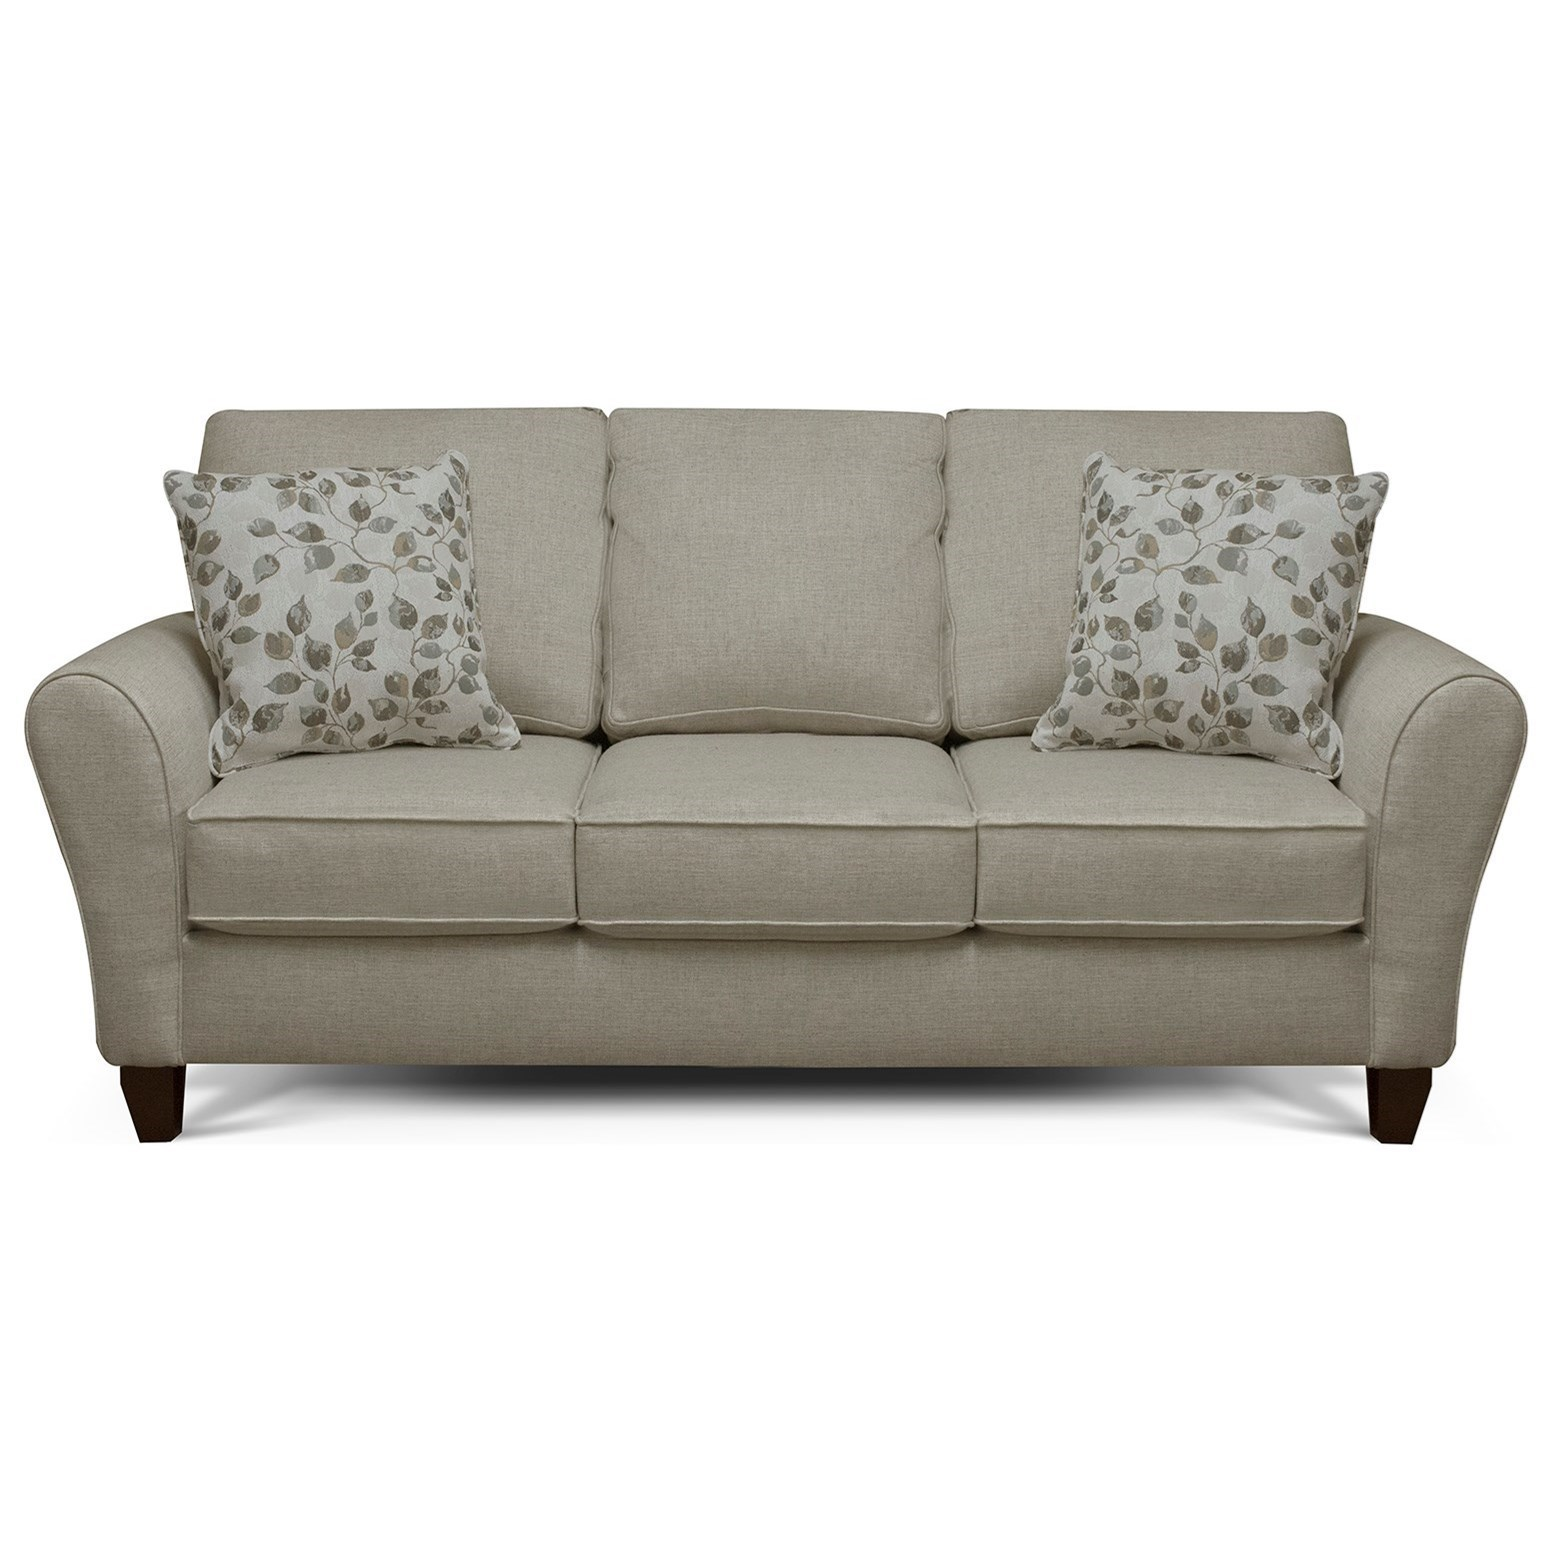 Sofa Outlet Paisley England Paxton 3b05 Transitional Flared Arm Sofa With Wooden Legs